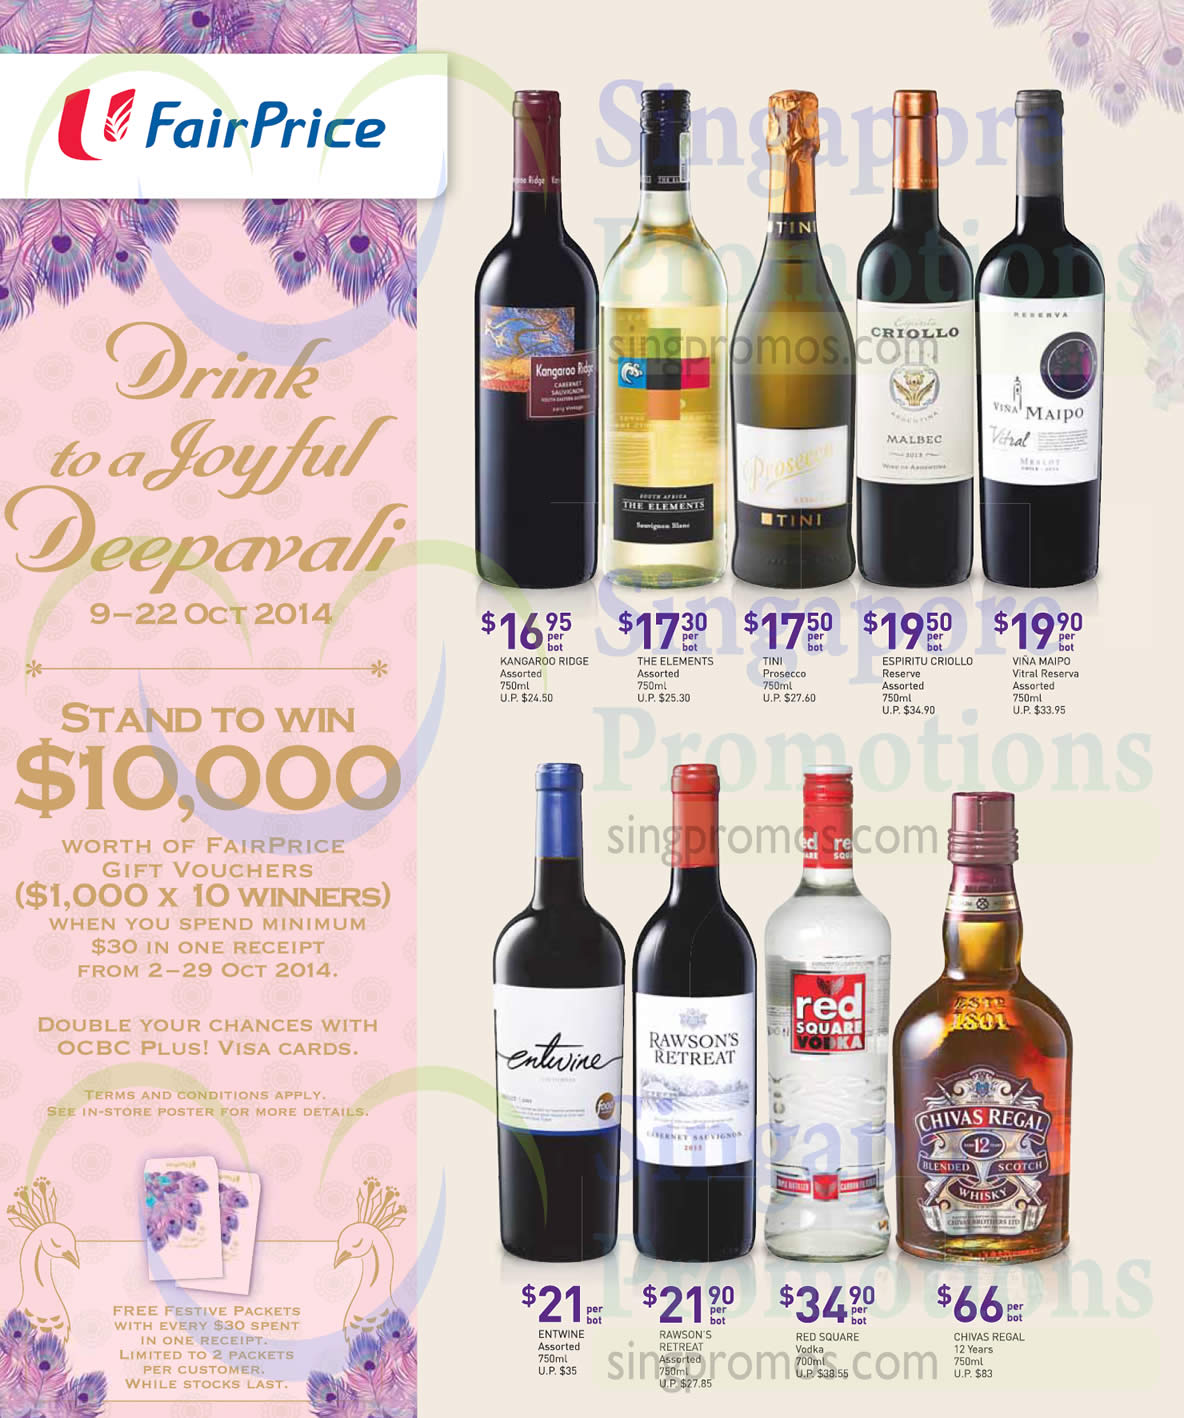 (Till 22 Oct)Wines, Chivas Regal, Red Square, Kangaroo Ridge, The Elements, Tini Prosecco, Espiritu Criollo Reserve, Vina Maipo, Entwine